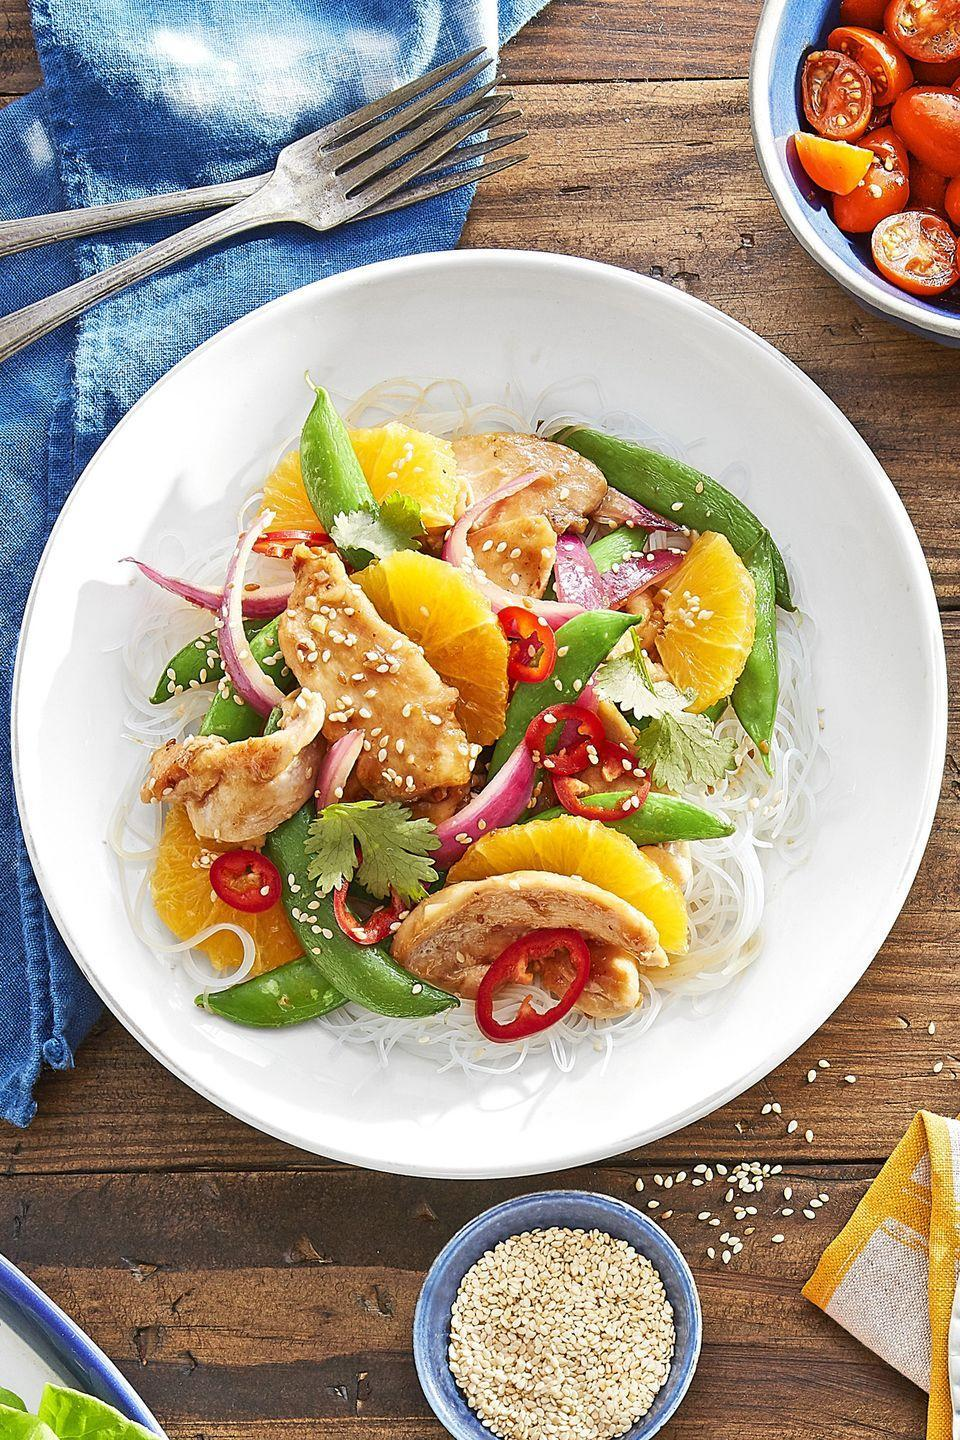 "<p>Sweet sugar snap peas and sliced oranges give color and sweetness to this chicken stir-fry.</p><p><strong><a href=""https://www.countryliving.com/food-drinks/recipes/a44282/sugar-snap-orange-teriyaki-stir-fry-recipe/"" rel=""nofollow noopener"" target=""_blank"" data-ylk=""slk:Get the recipe."" class=""link rapid-noclick-resp"">Get the recipe.</a></strong> </p>"